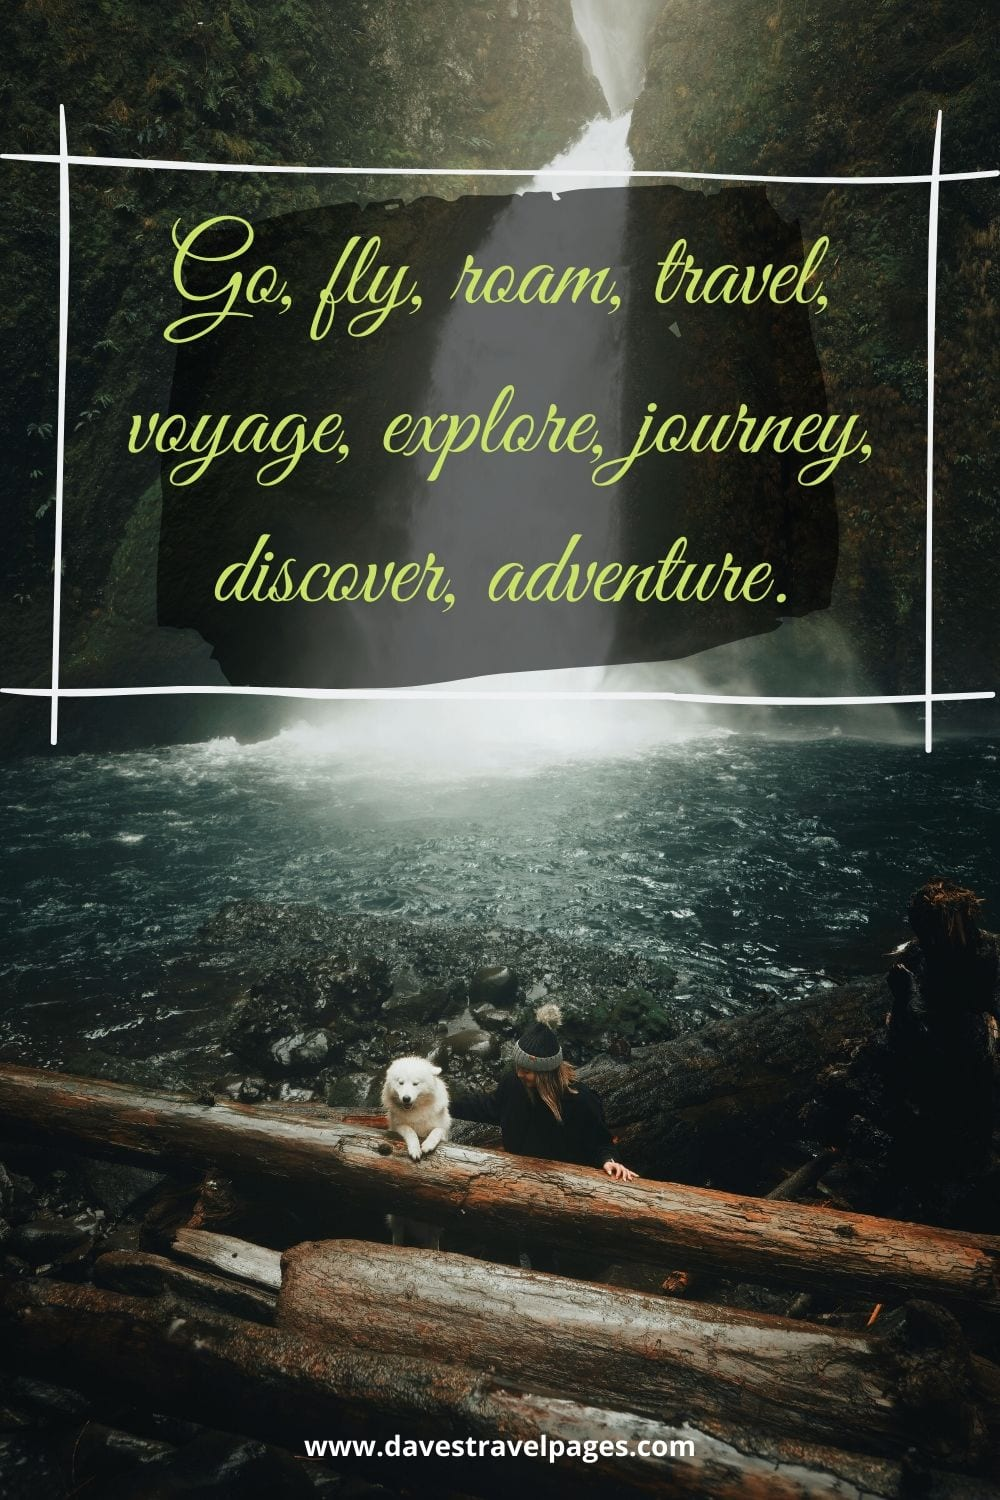 Inspiring travel caption: Go, fly, roam, travel, voyage, explore, journey, discover, adventure.""